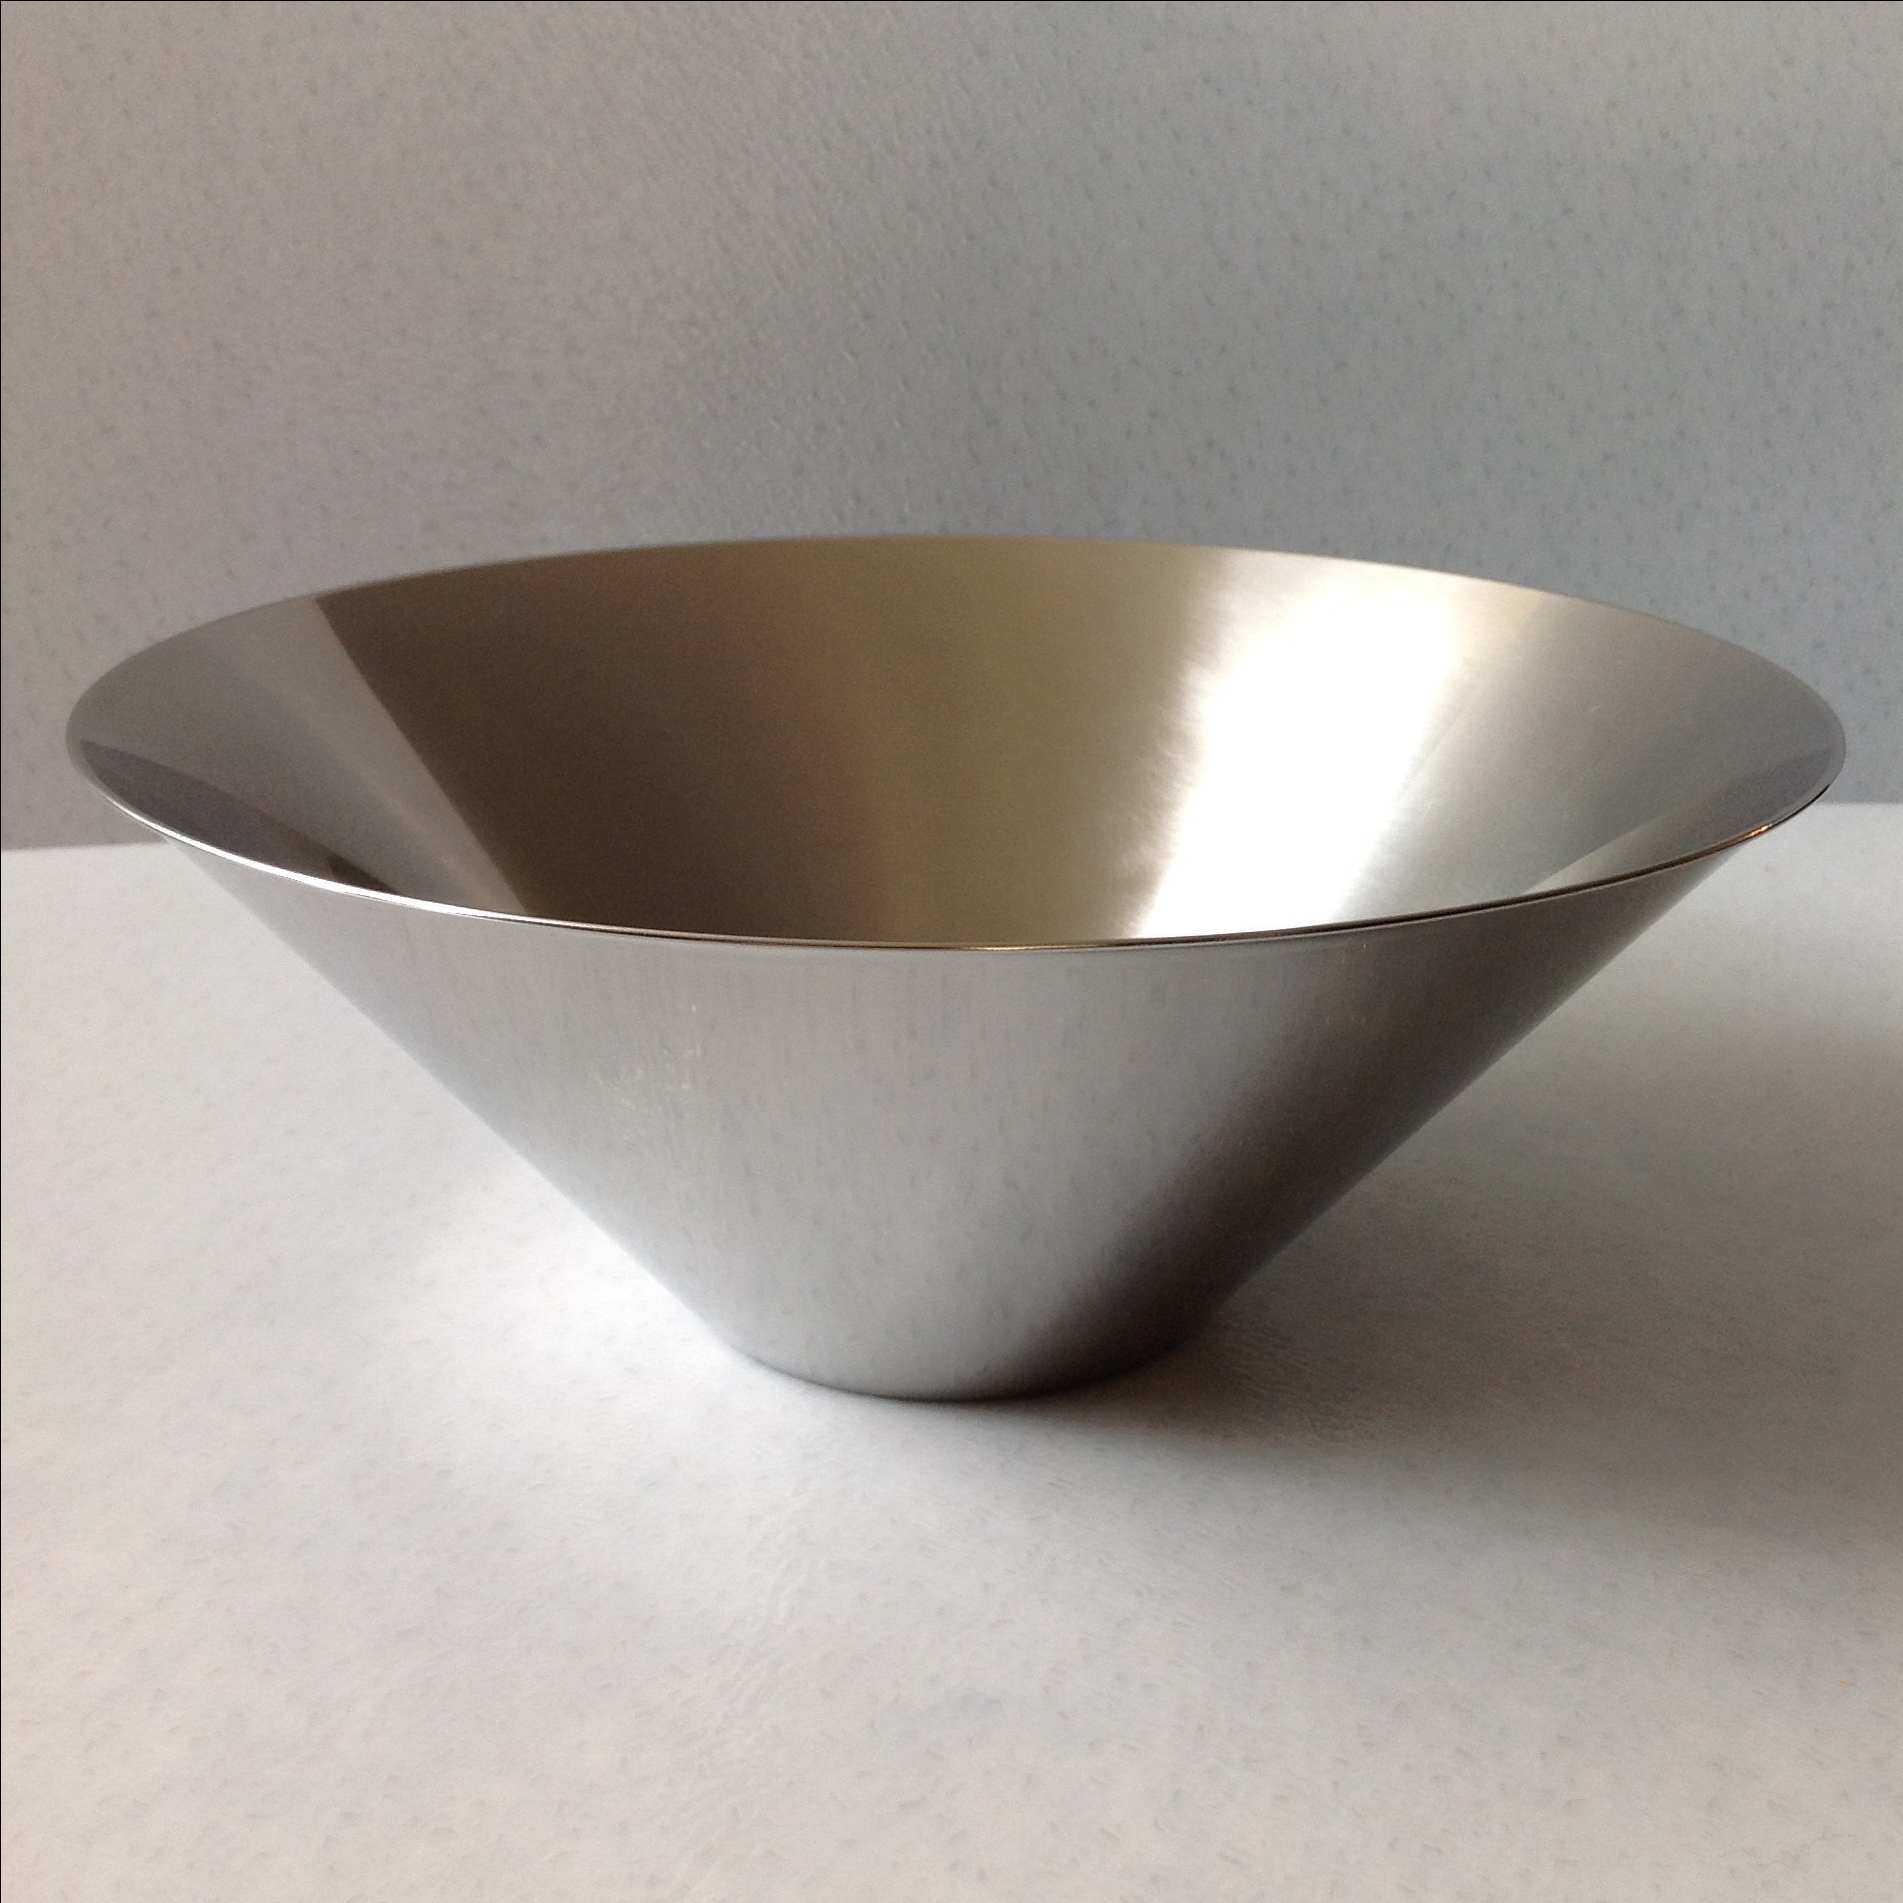 gabis sweden stainless steel bowl by nils nisbel image 2 of 9